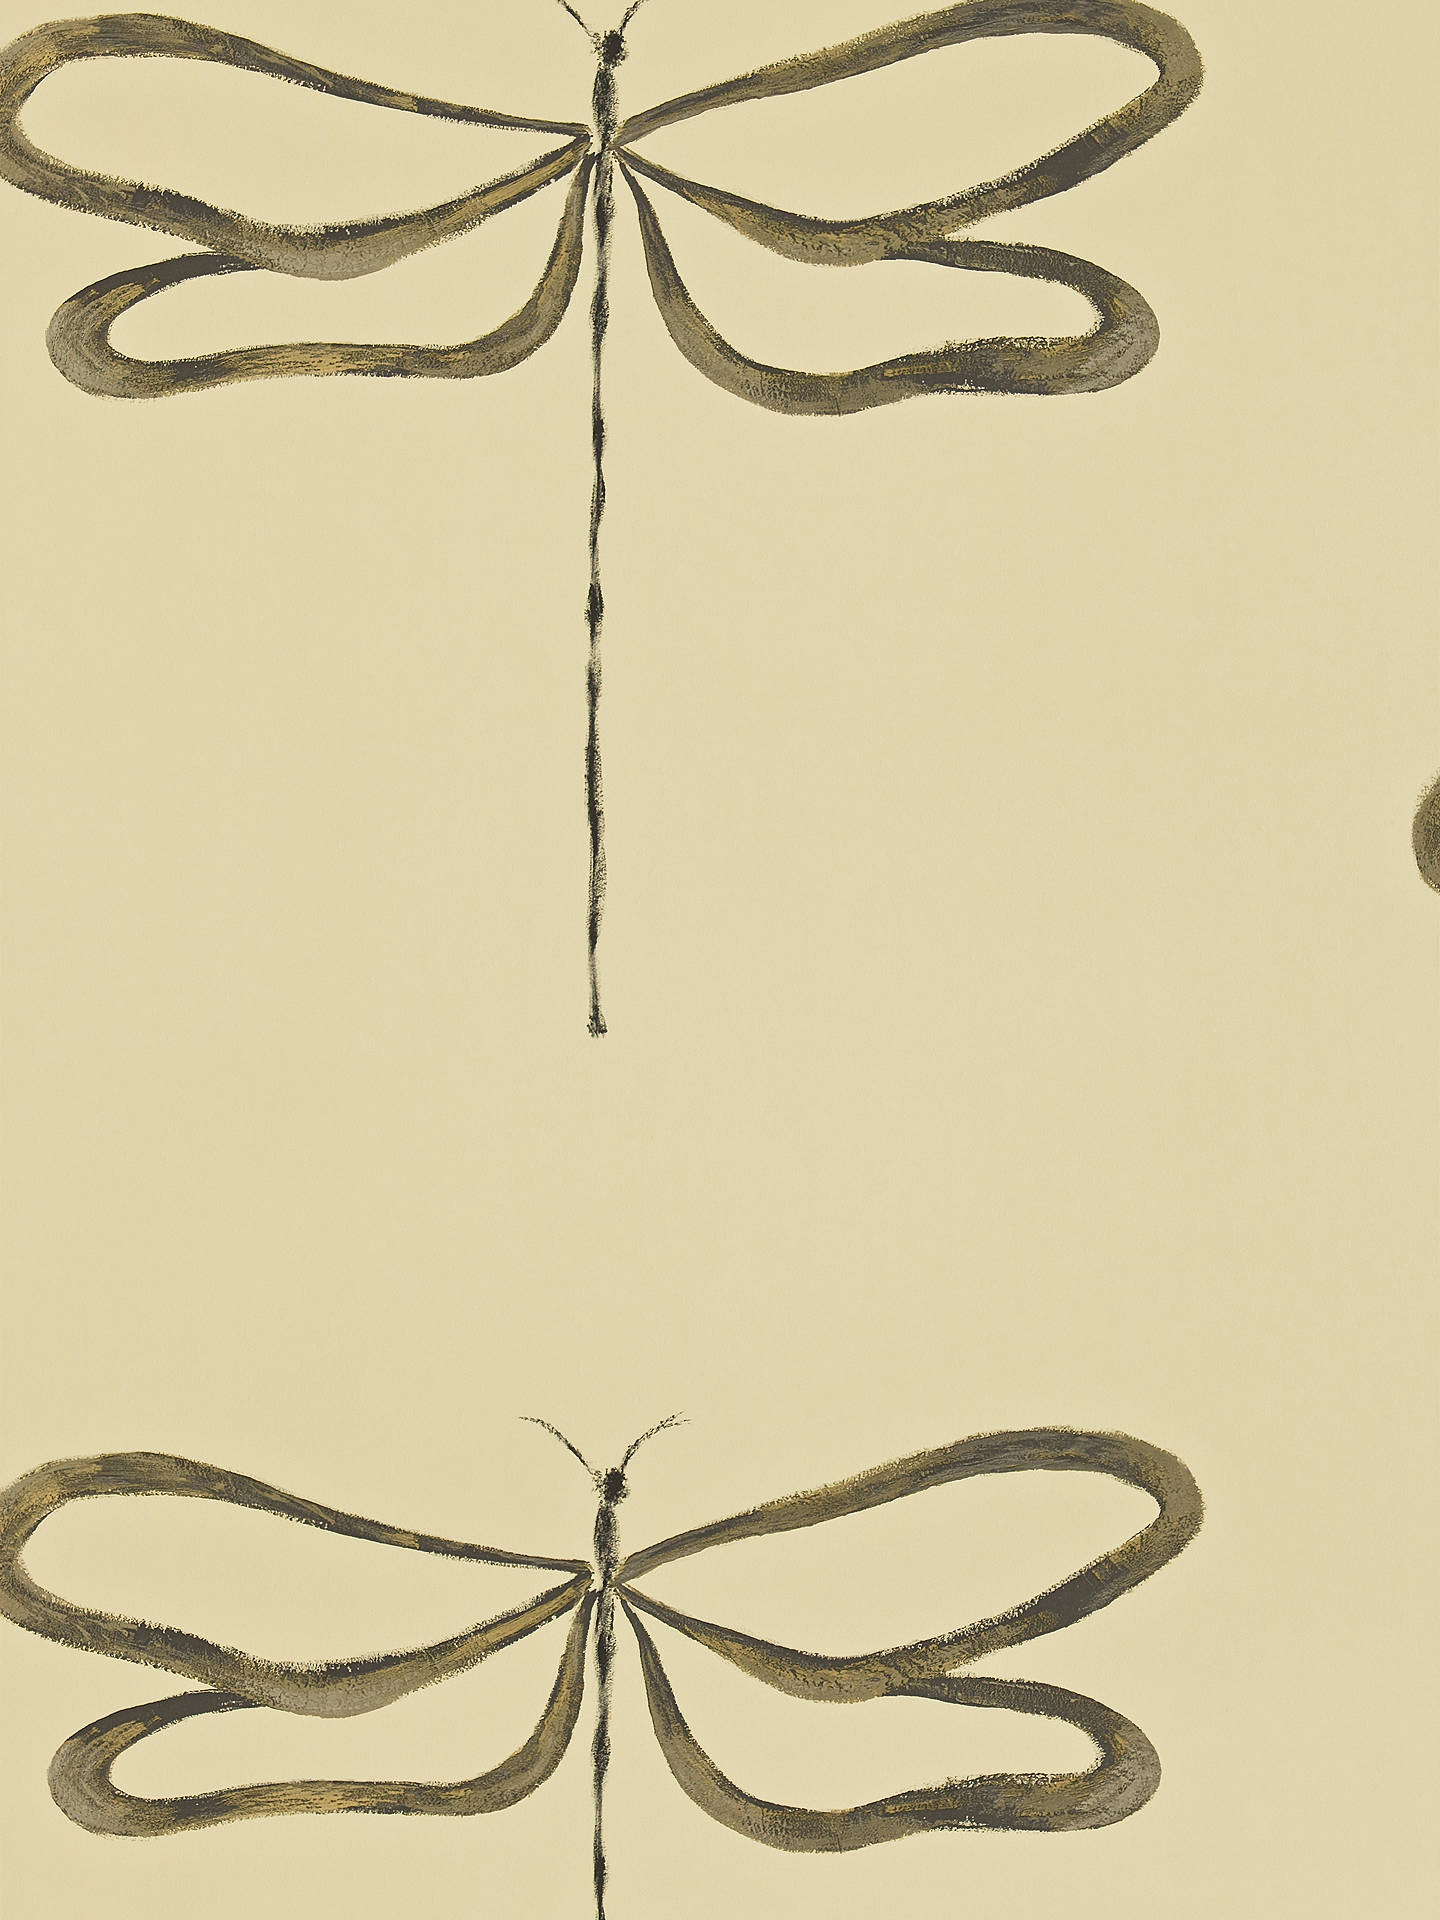 BuyScion Dragonfly Wallpaper, 110242 Online at johnlewis.com